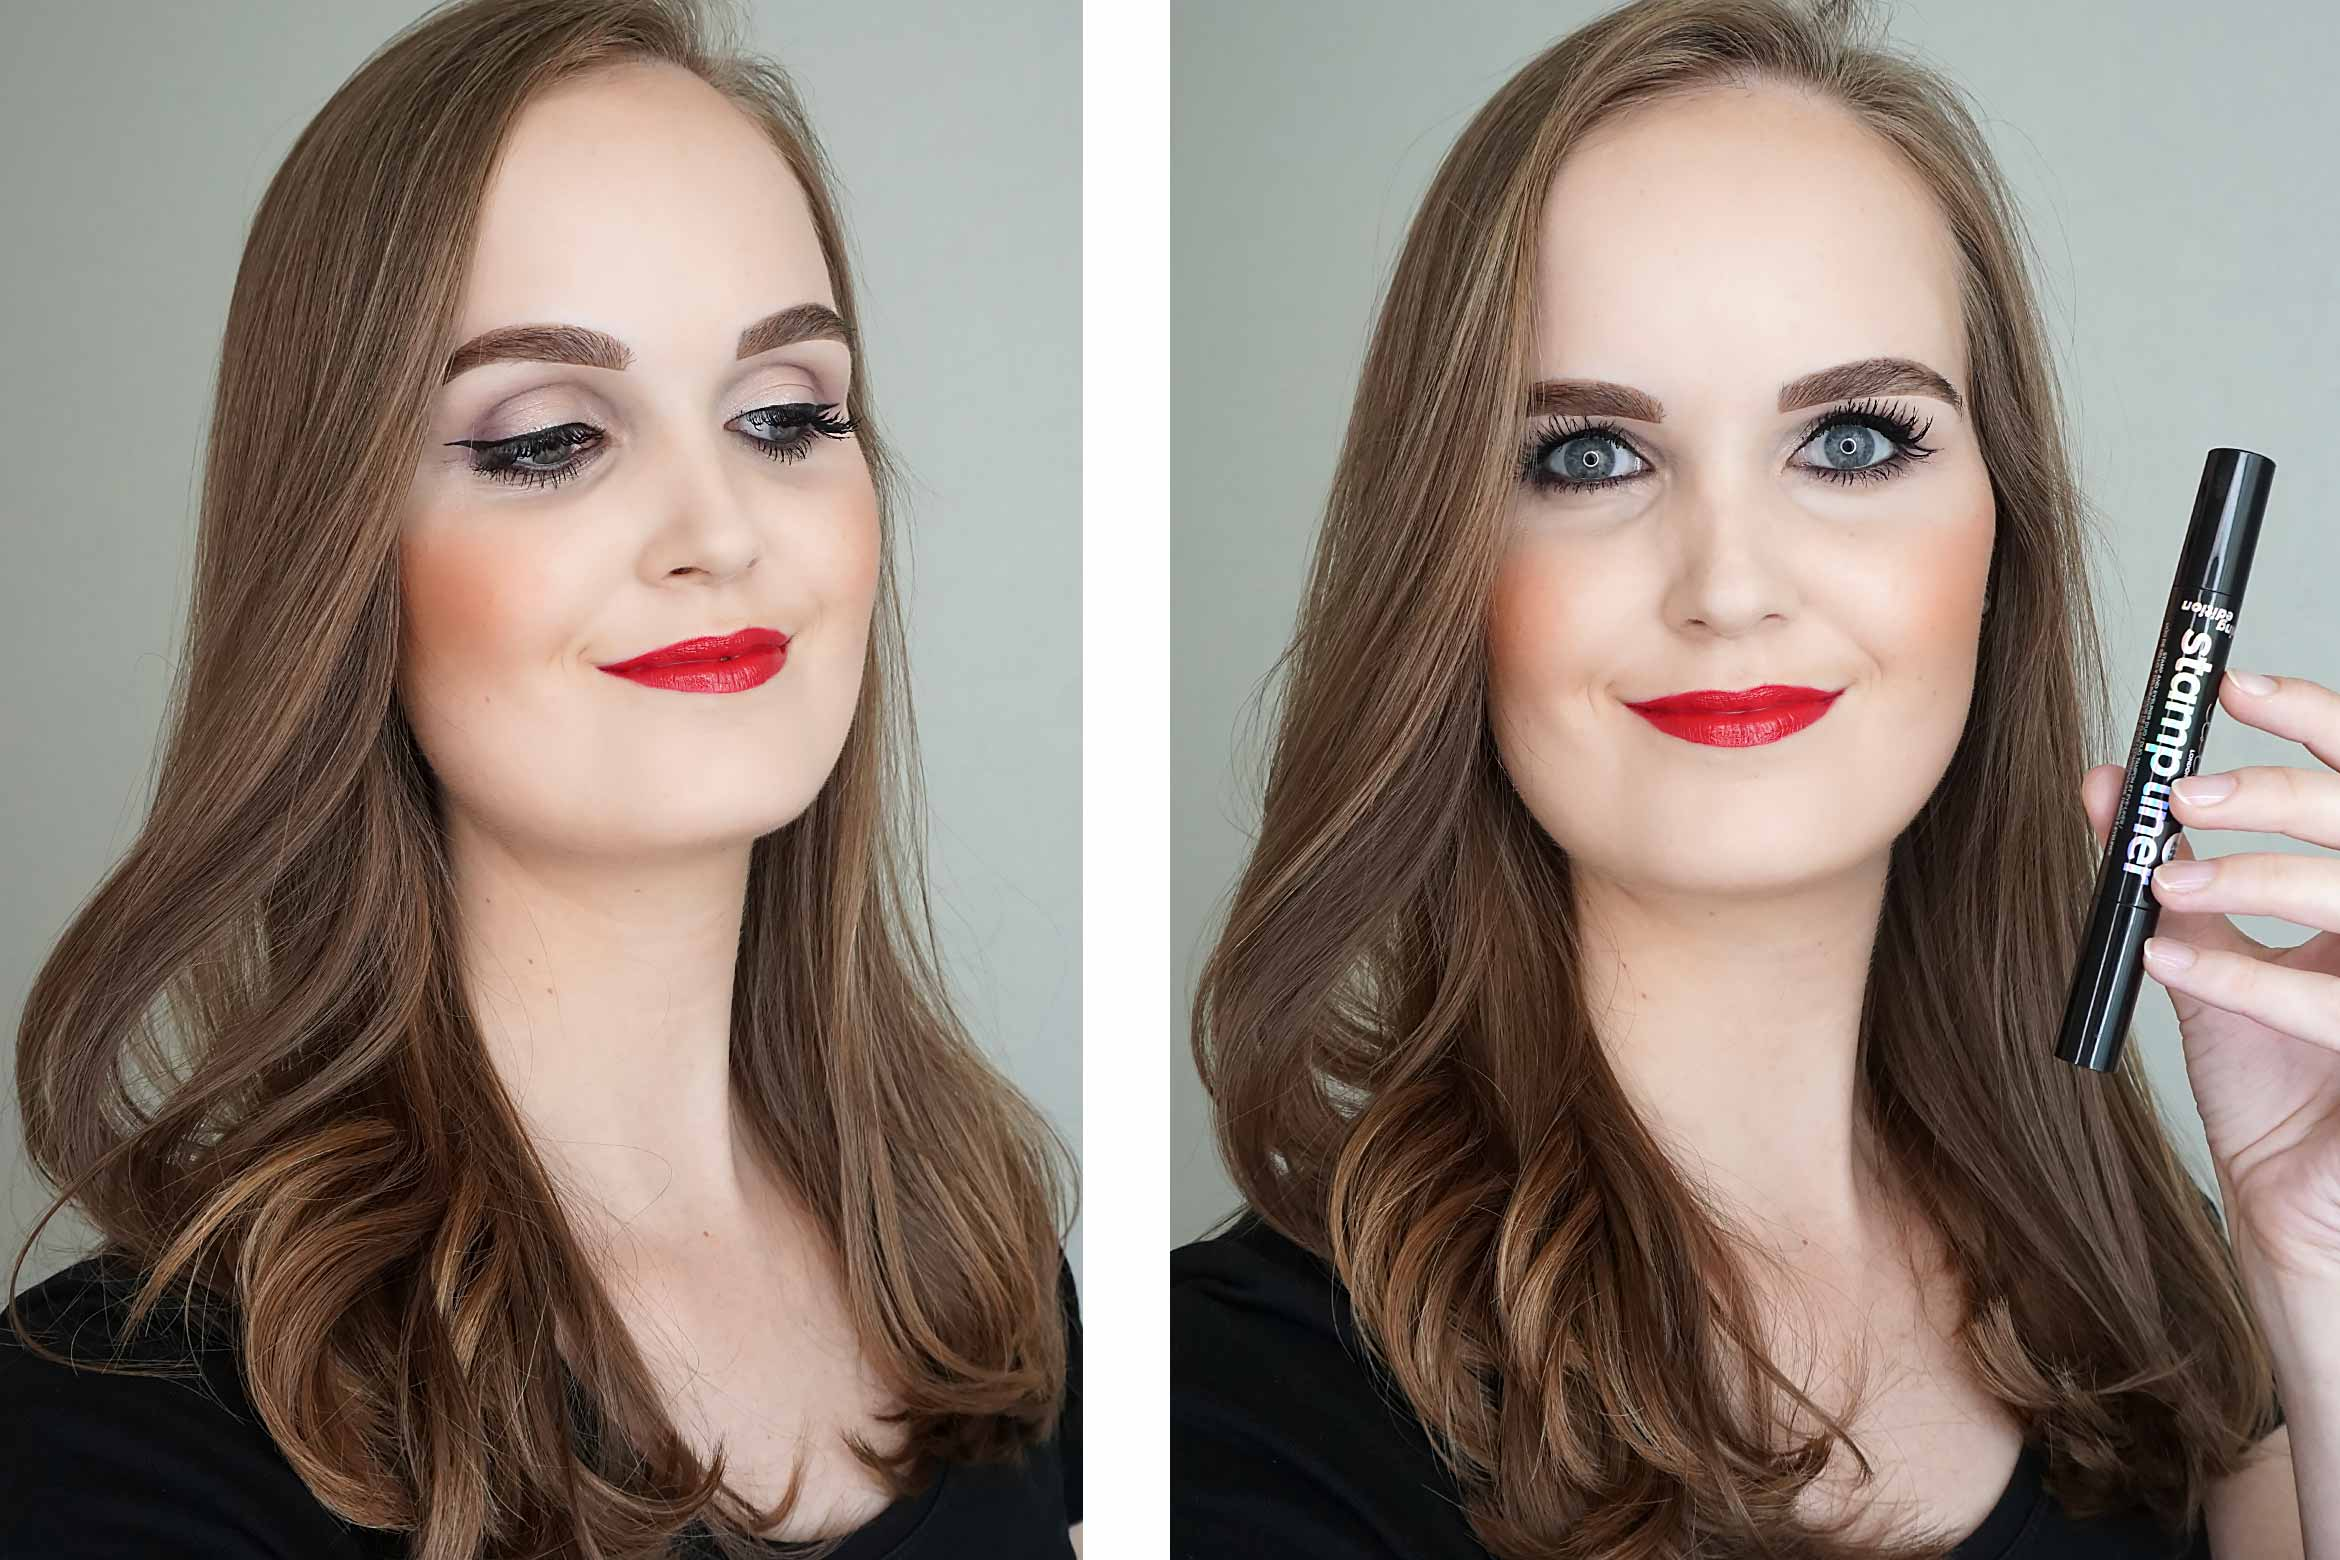 lottie-london-stamp-liner-wing-edition-look-review-1